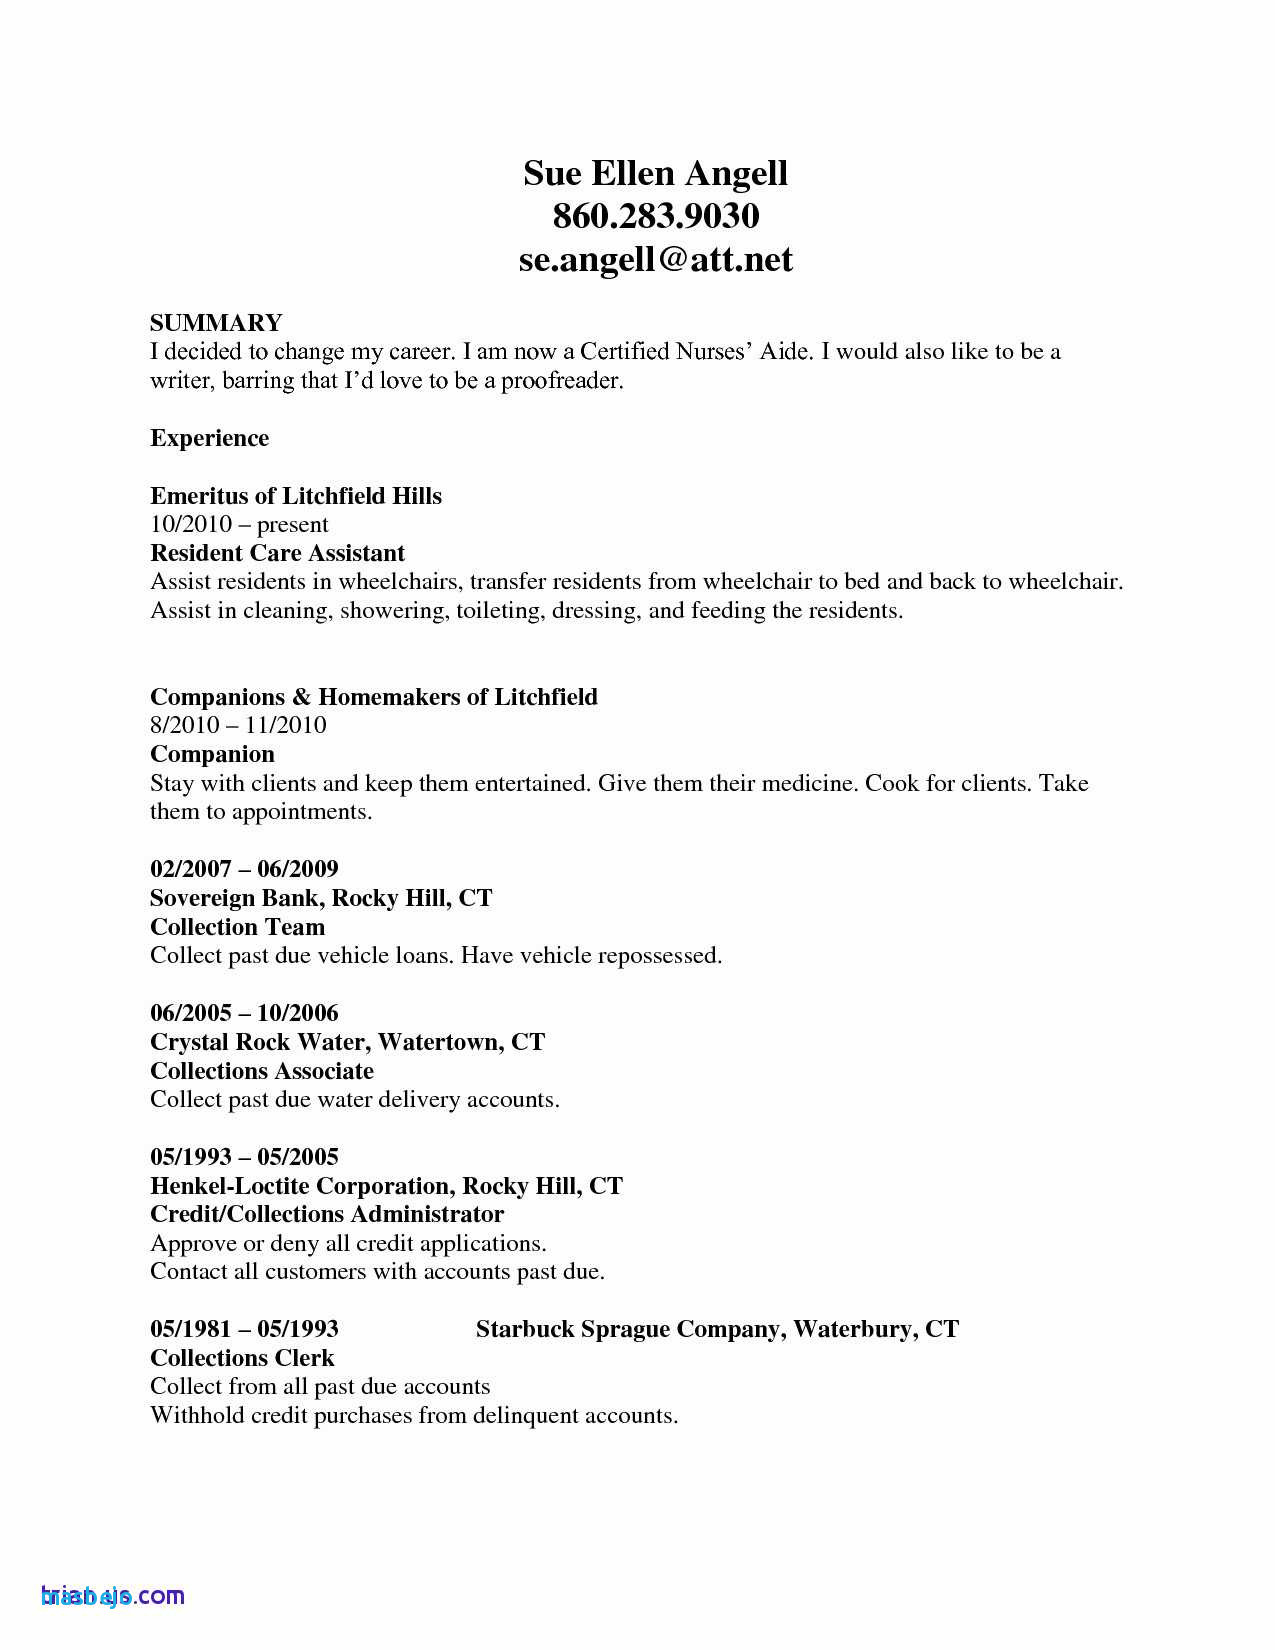 Resume for Nursing Student with No Experience - Cna Resume Rn Bsn Resume Awesome Nurse Resume 0d Wallpapers 42